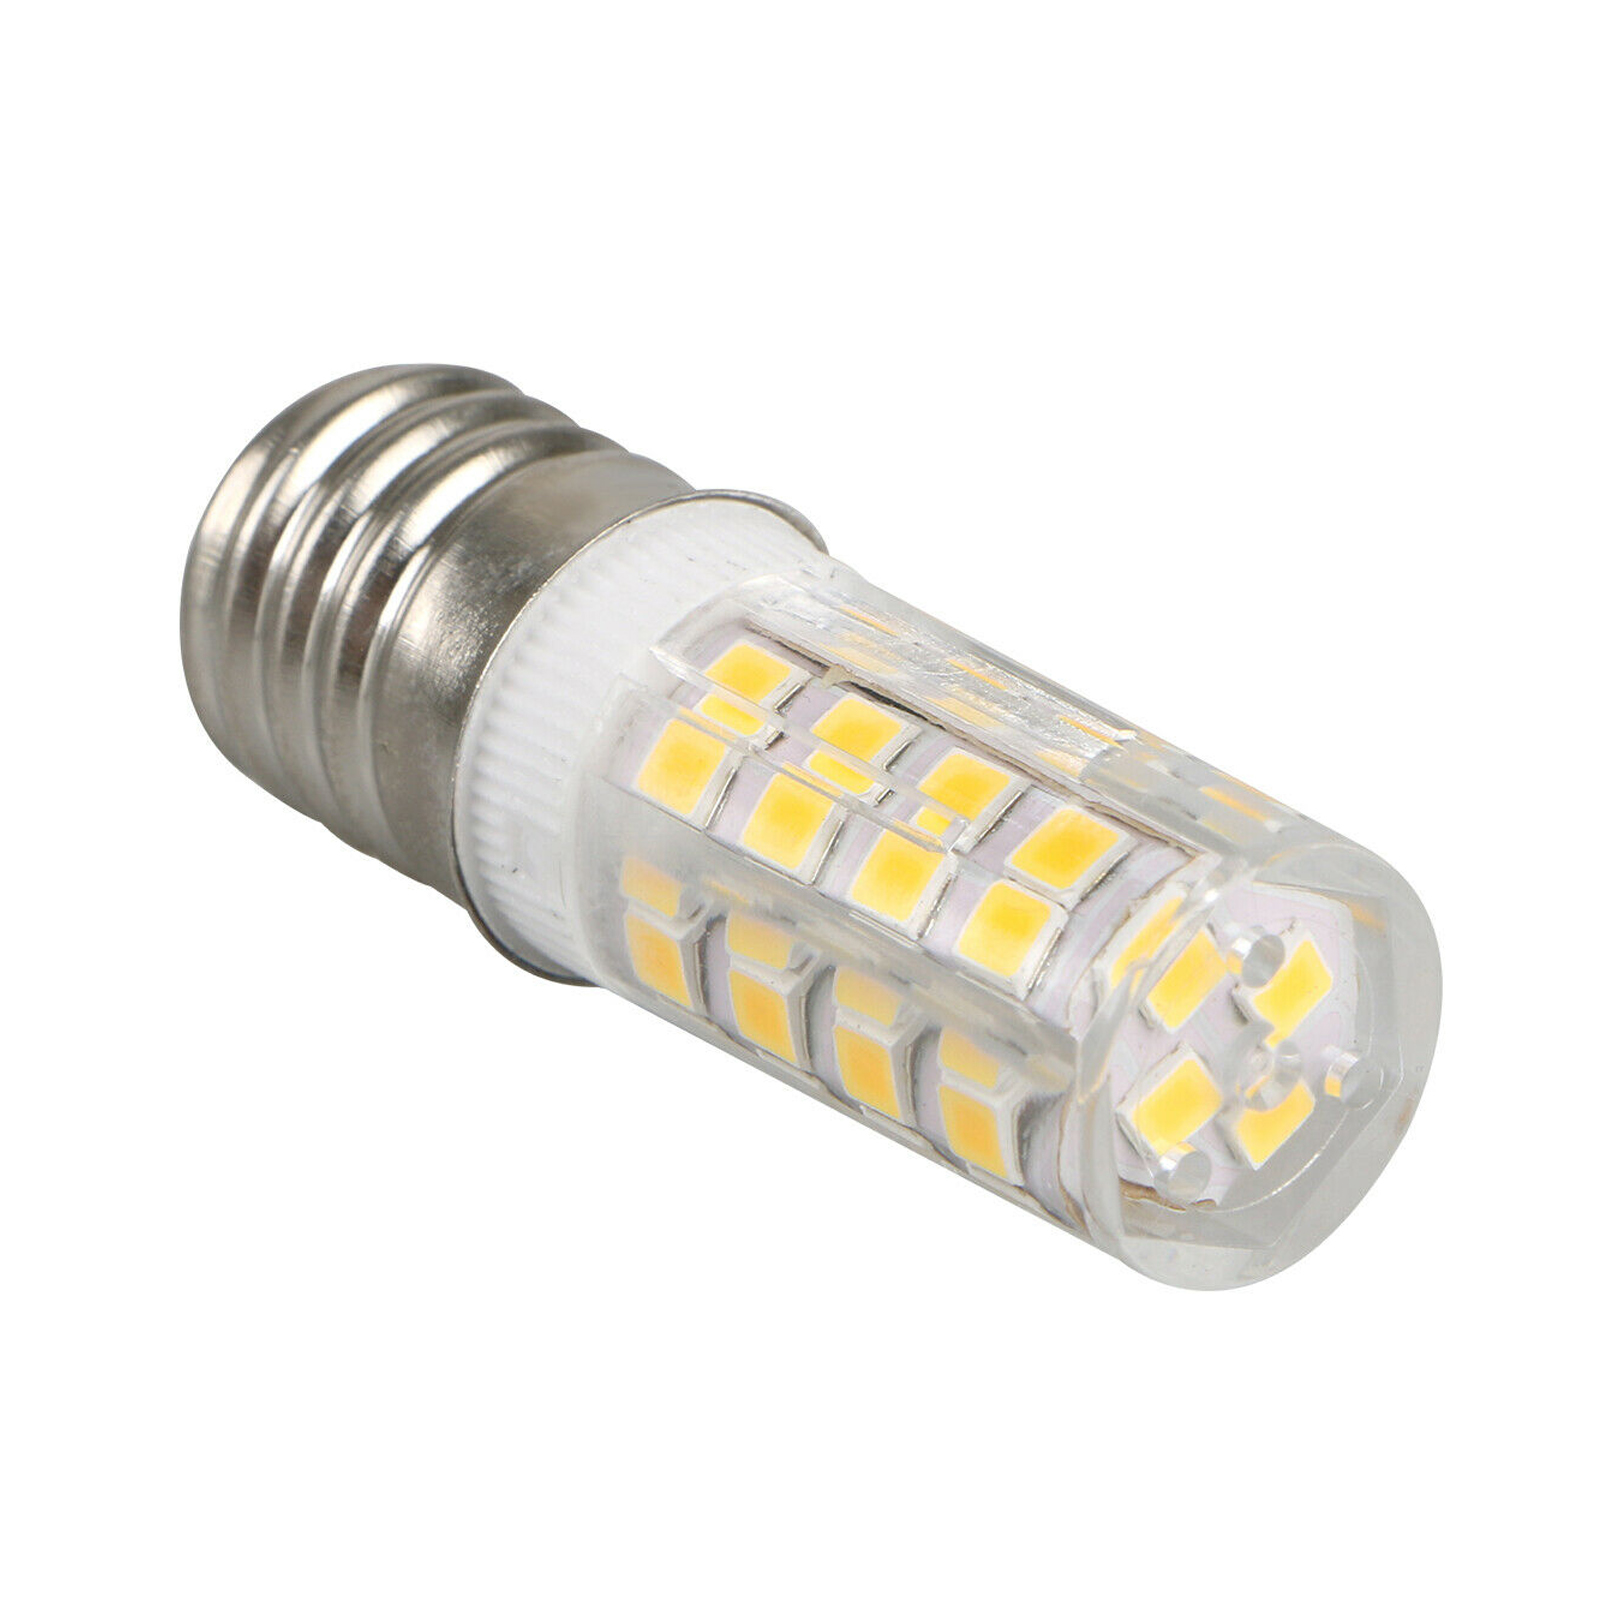 1-2PCS-E17-LED-Bulb-Microwave-Oven-Light-Dimmable-4W-Natural-White-6000K-Light thumbnail 3